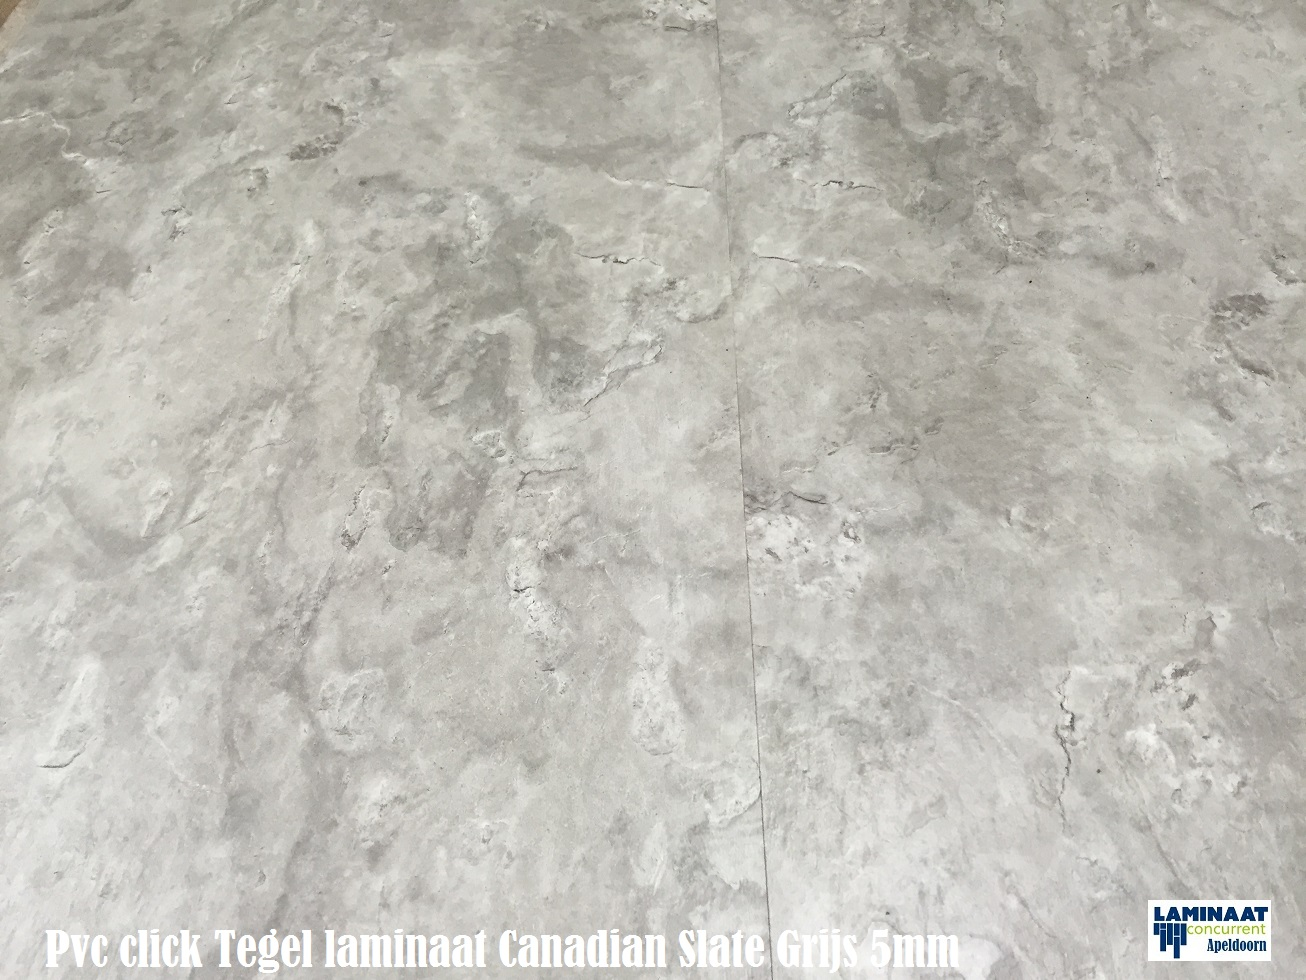 Canadian Slate Canadian Slate 2 Laminaat Concurrent